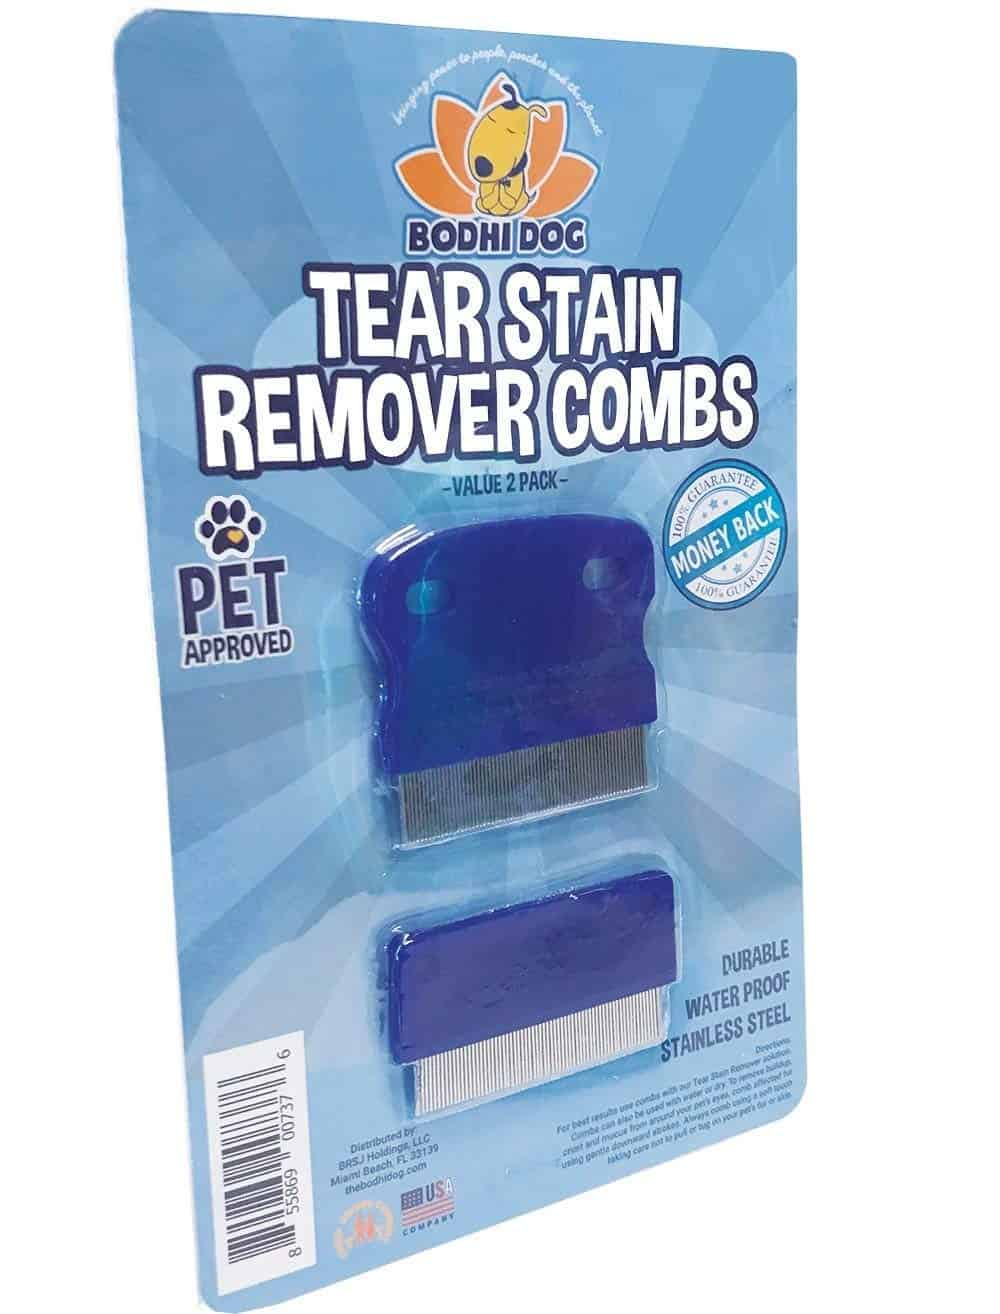 Tear Eye Stain Remover Combs